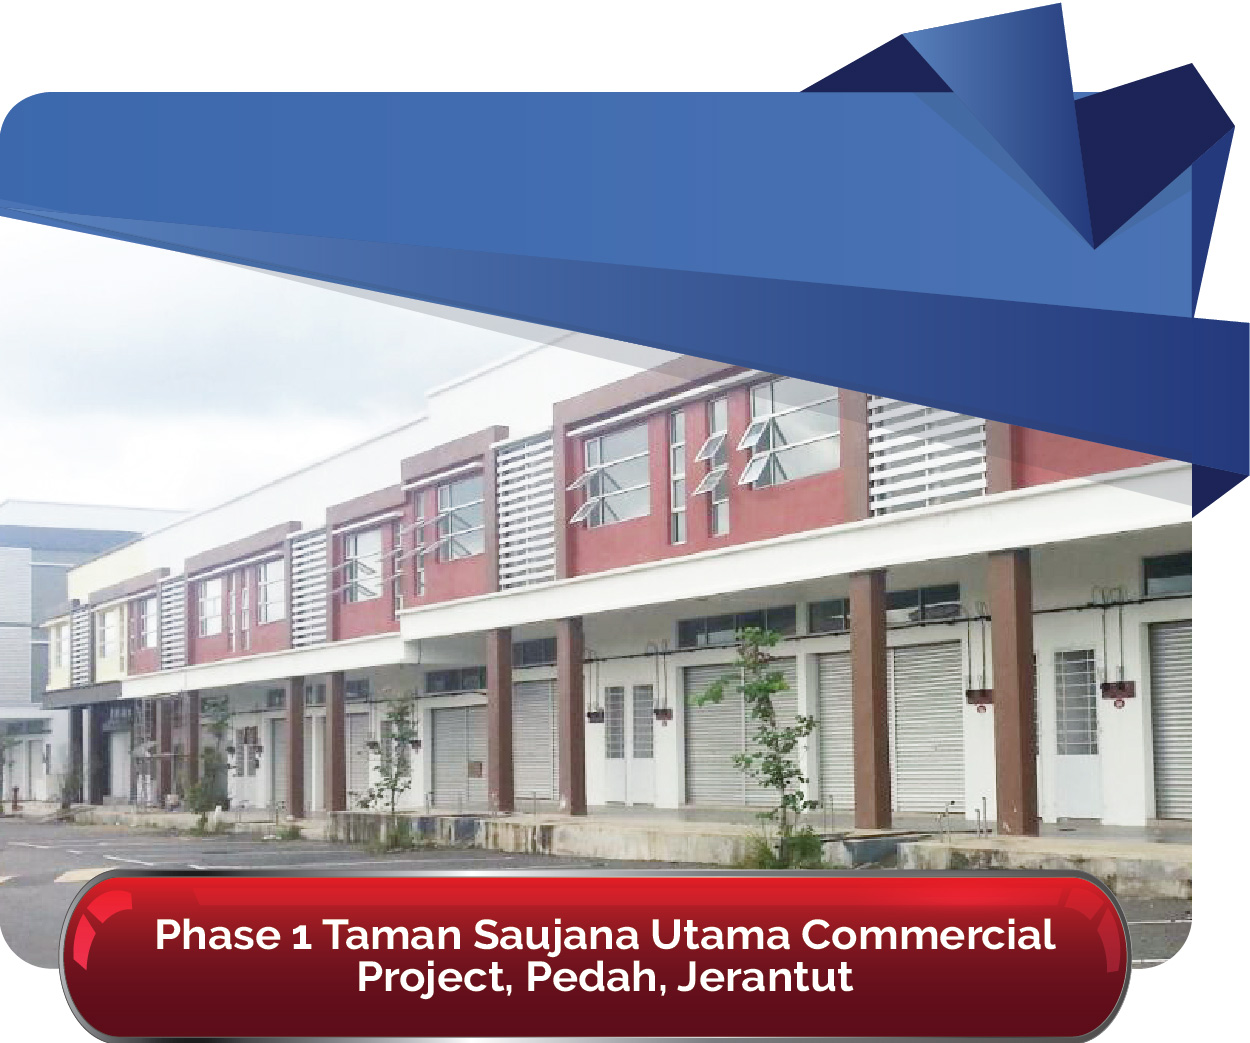 Phase 1 Taman Saujana Utama Commercial Project 01